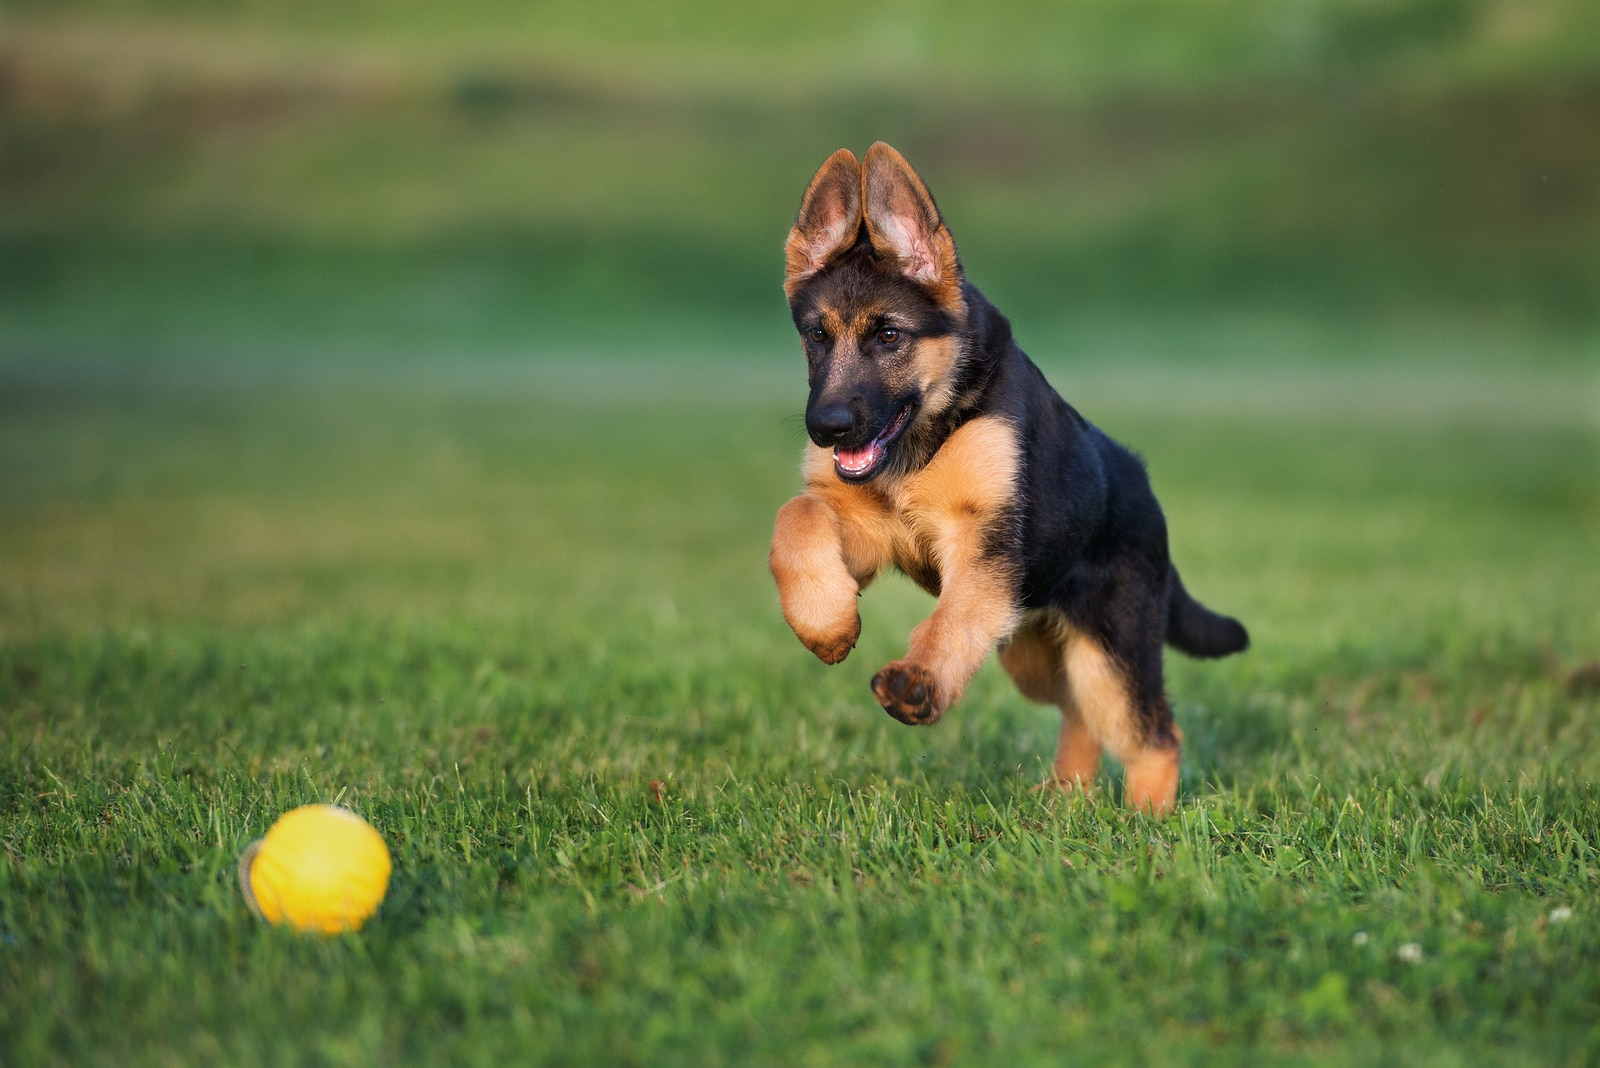 German shepherd puppy playing with a ball outdoors